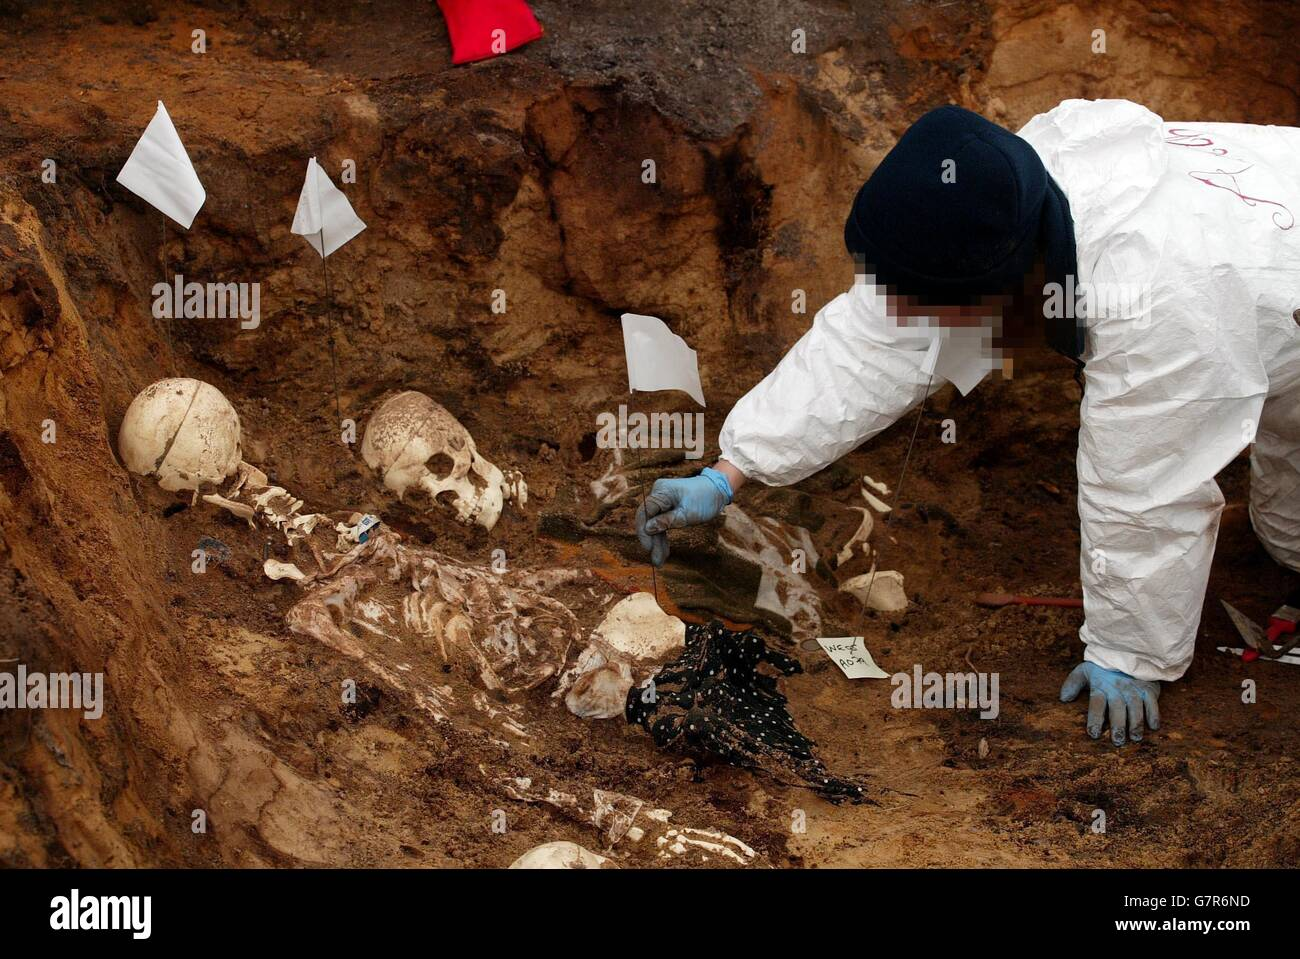 Forensic Archaeology High Resolution Stock Photography And Images Alamy